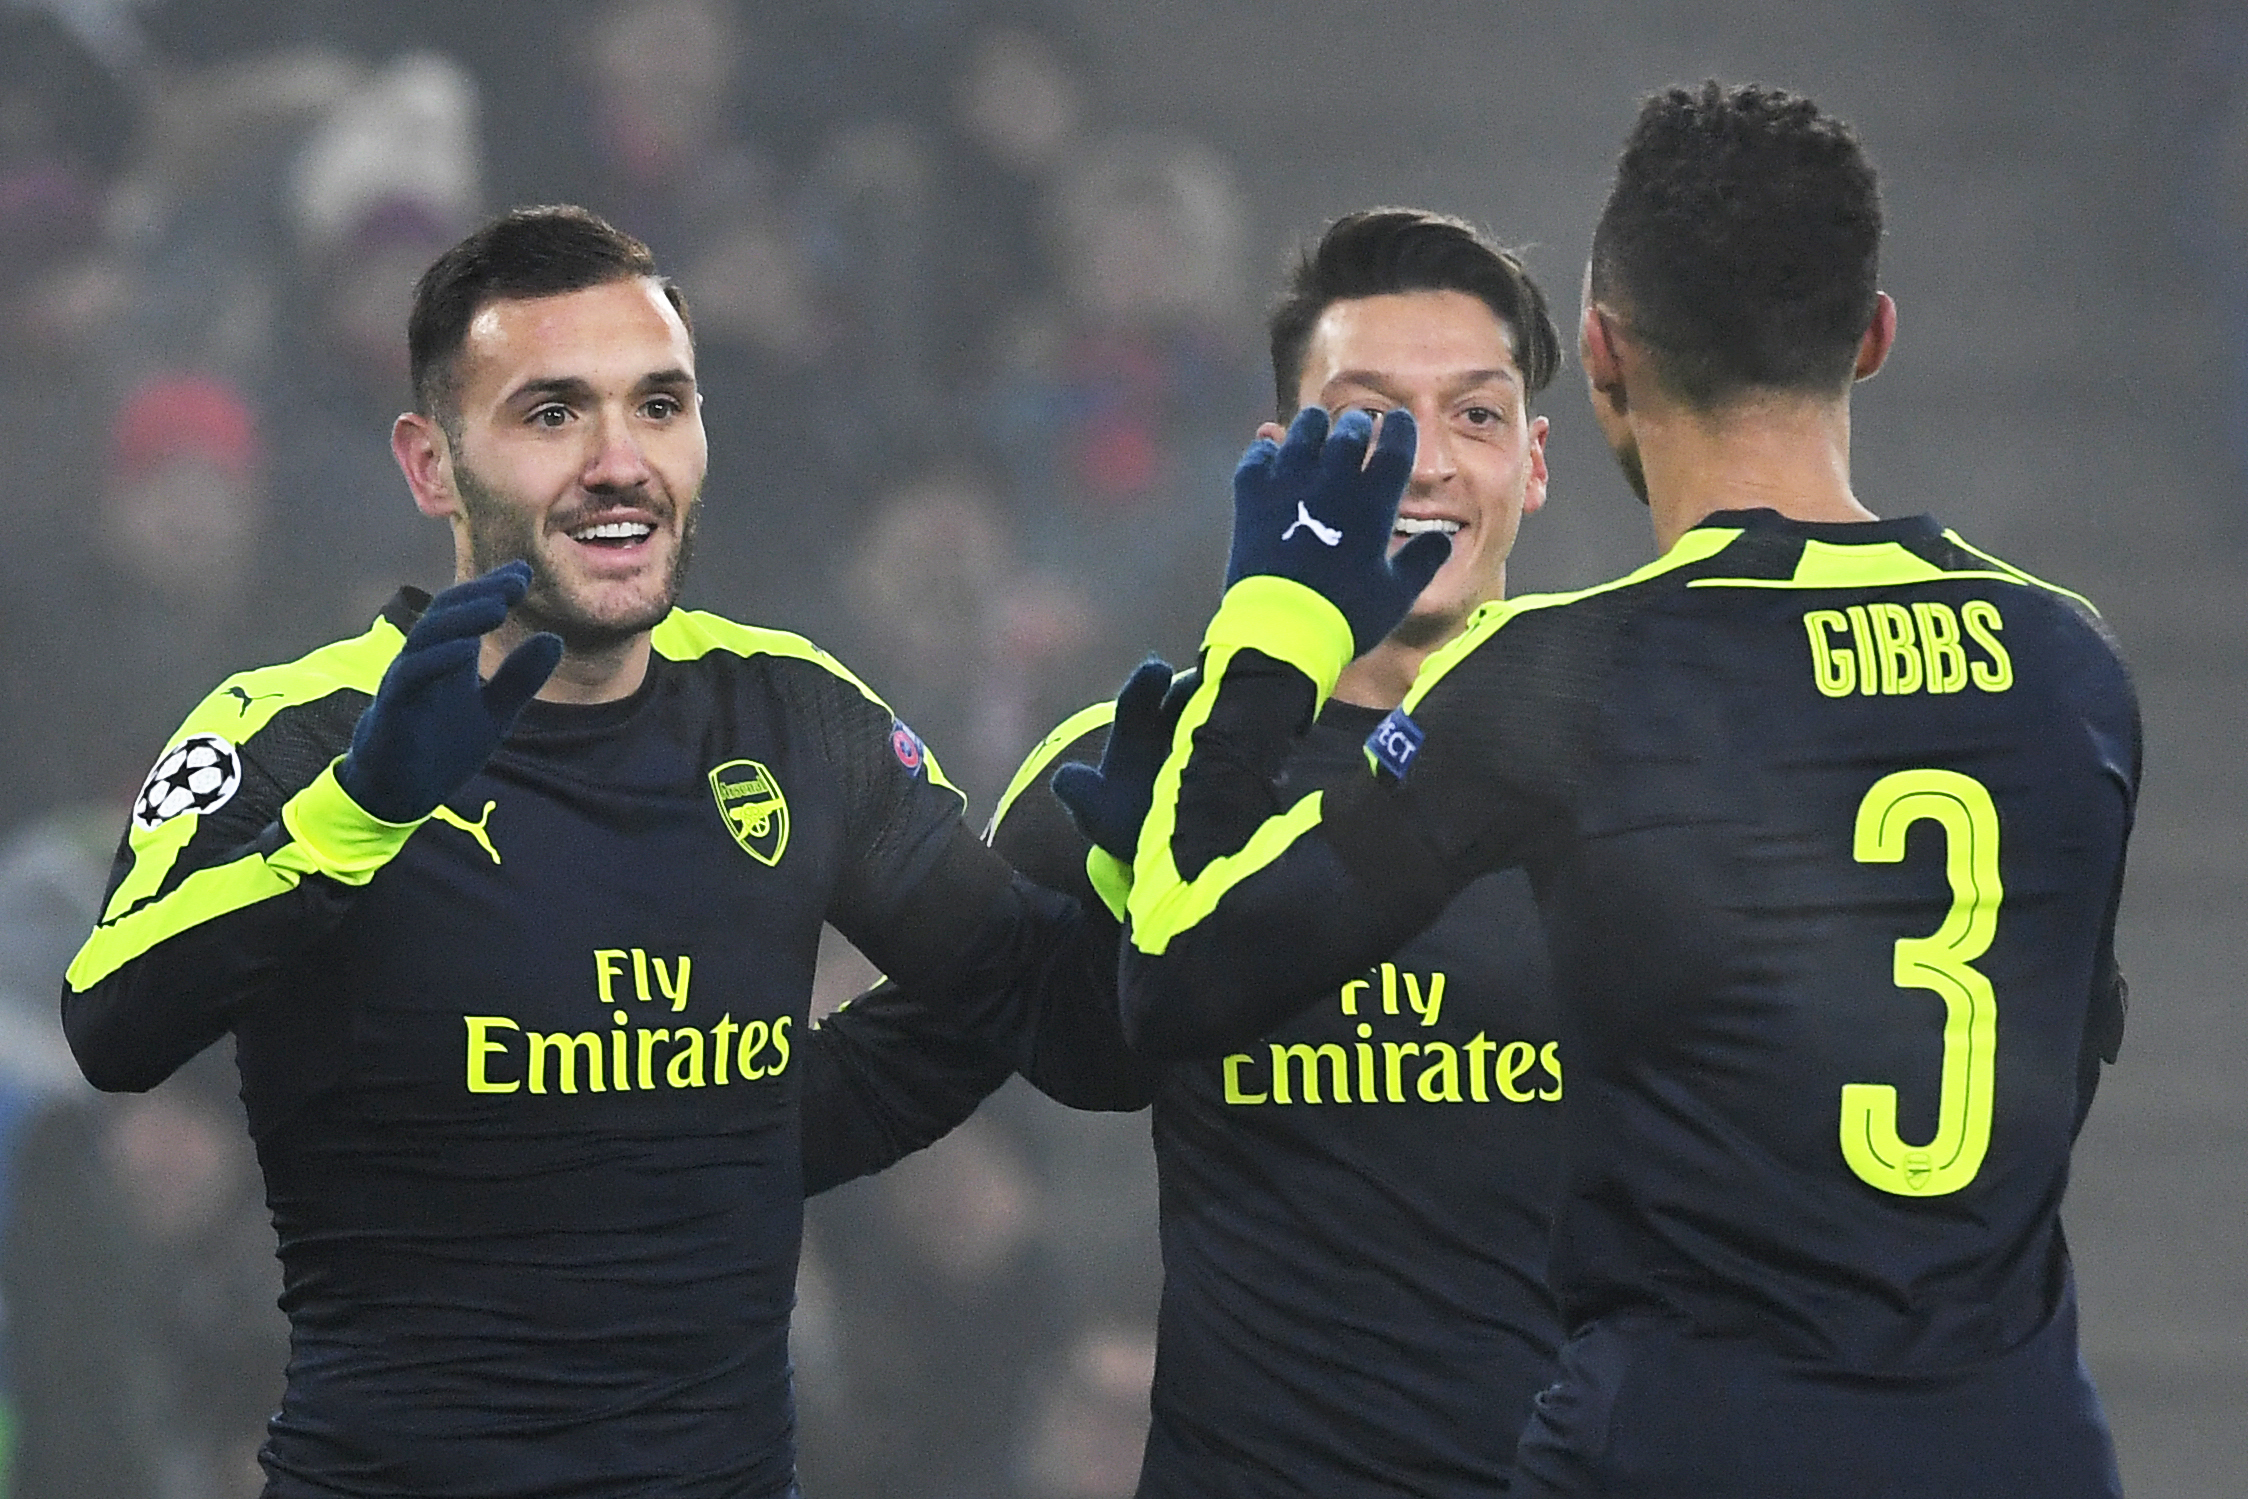 Arsenal fans believe Kieran Gibbs-Lucas Perez is the new Mesut Ozil-Alexis Sanchez